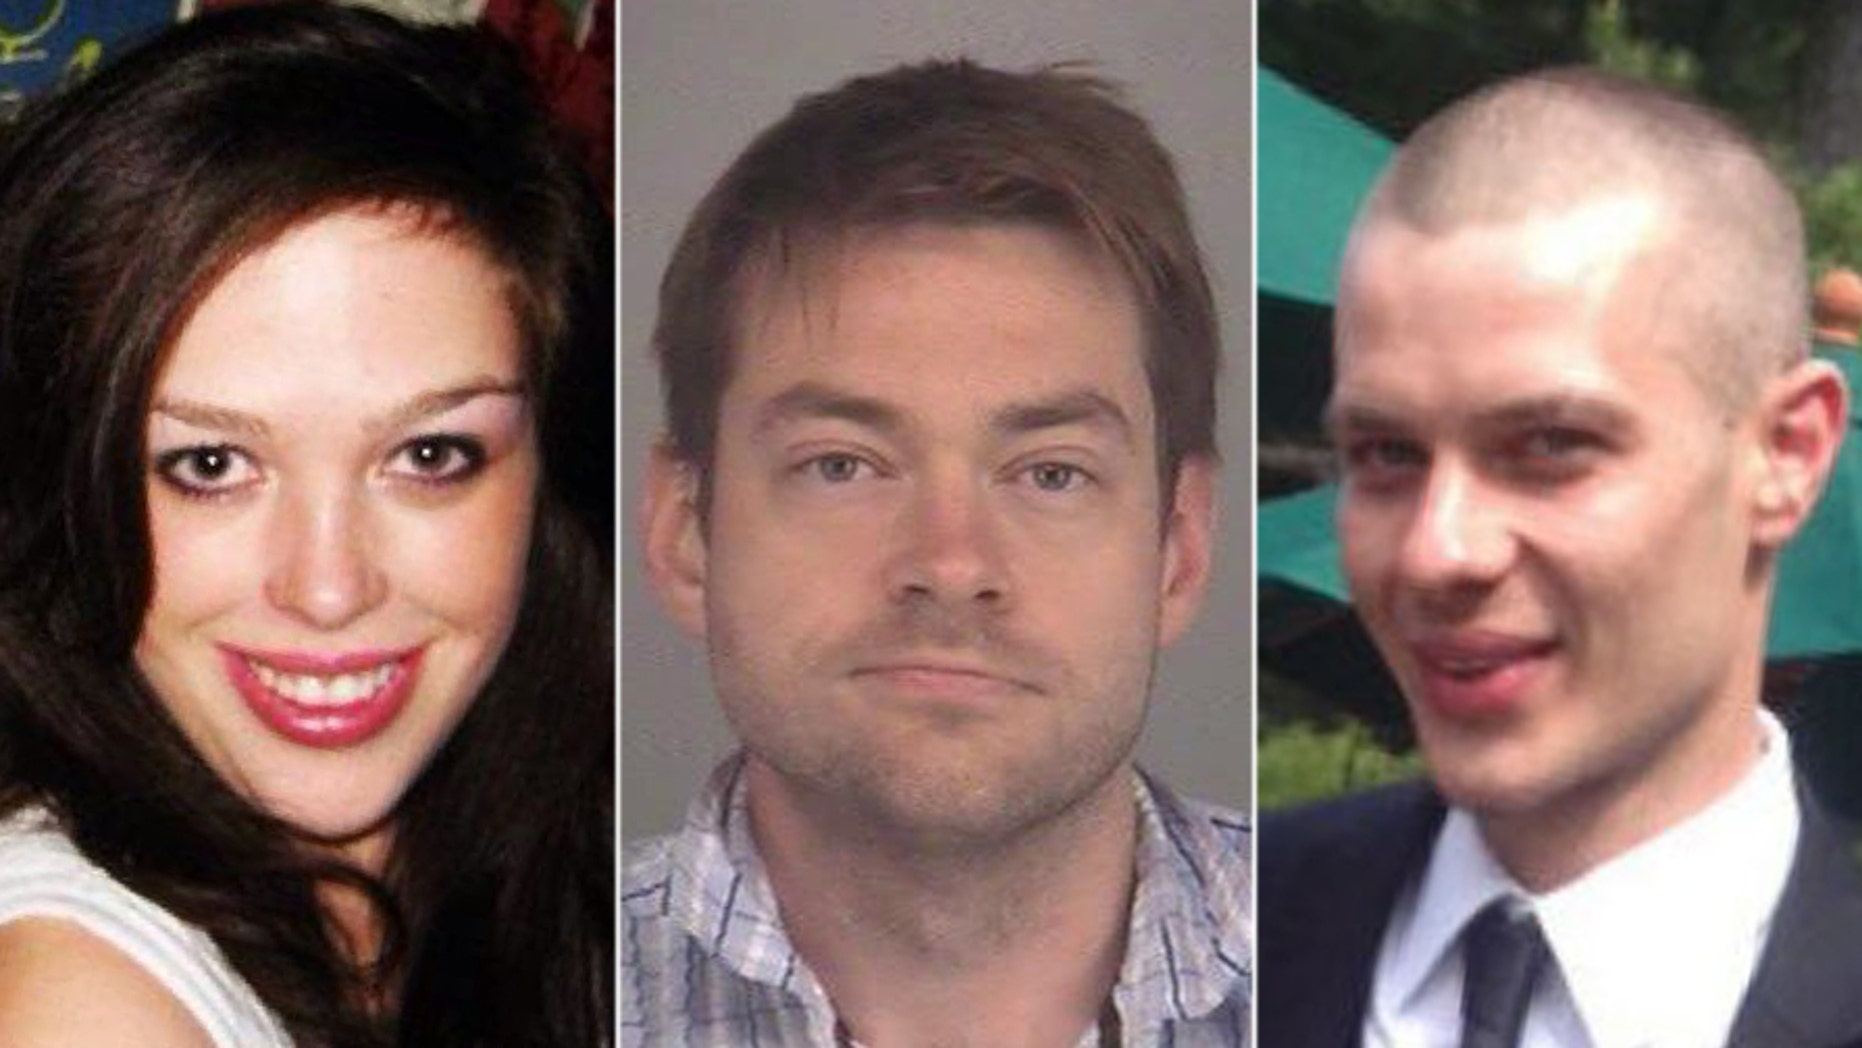 Dellen Millard, middle, and Mark Smich, right, were convicted of murder in the death of Laura Babcock, left.